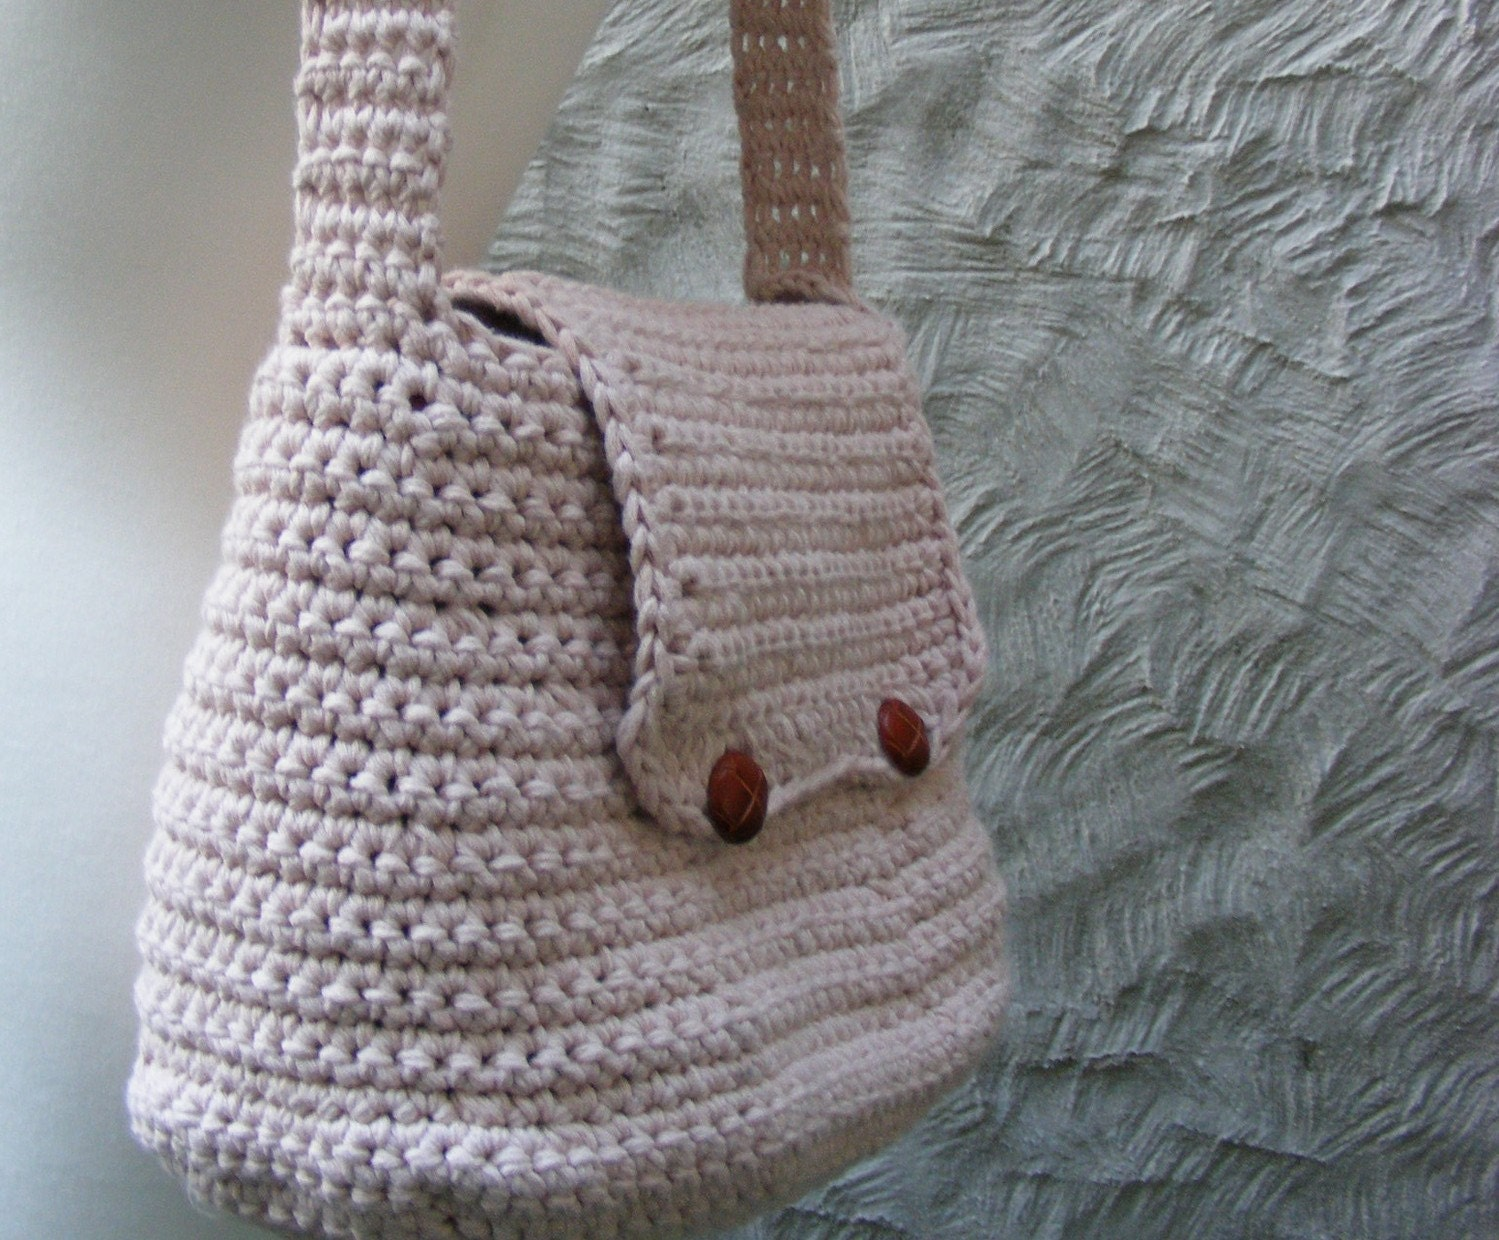 Crochet Bag Pattern For Beginners : Crochet Patterns For Beginners Bag Patterns Crochet Hobo Bag